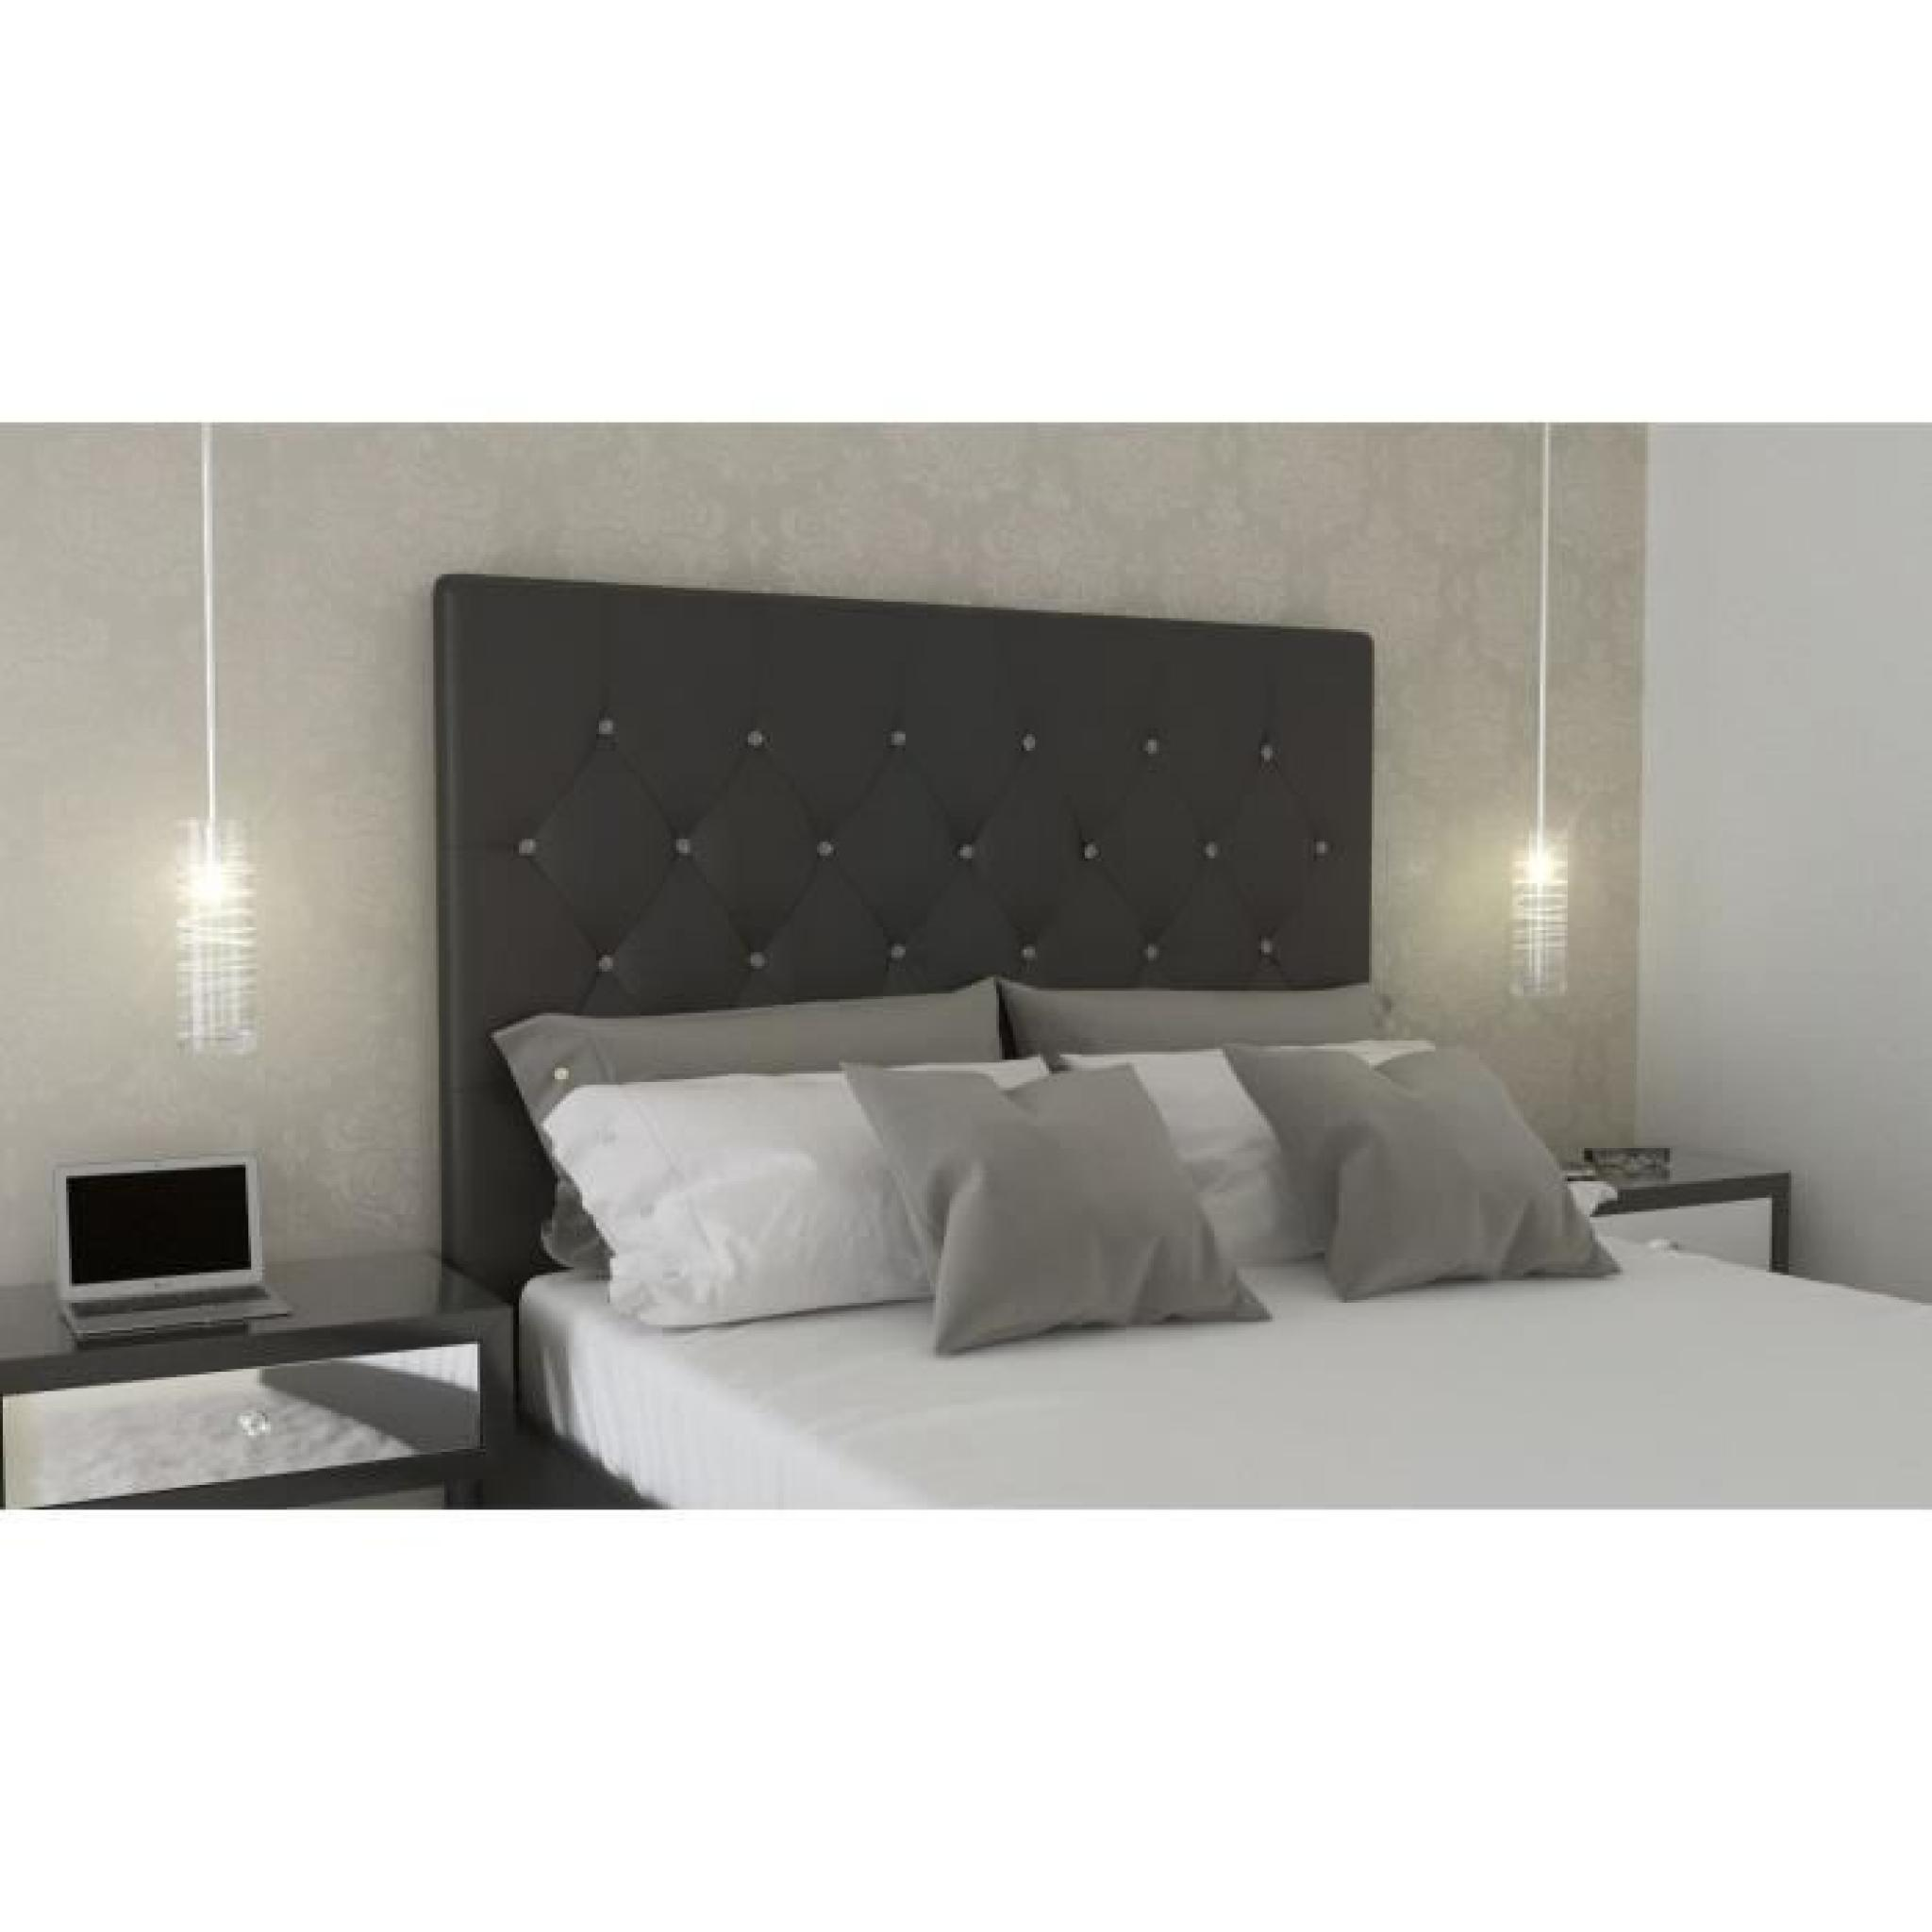 tete de lit adulte lit adulte contemporain t te de lit cuir molletonn e eva lit adulte design. Black Bedroom Furniture Sets. Home Design Ideas